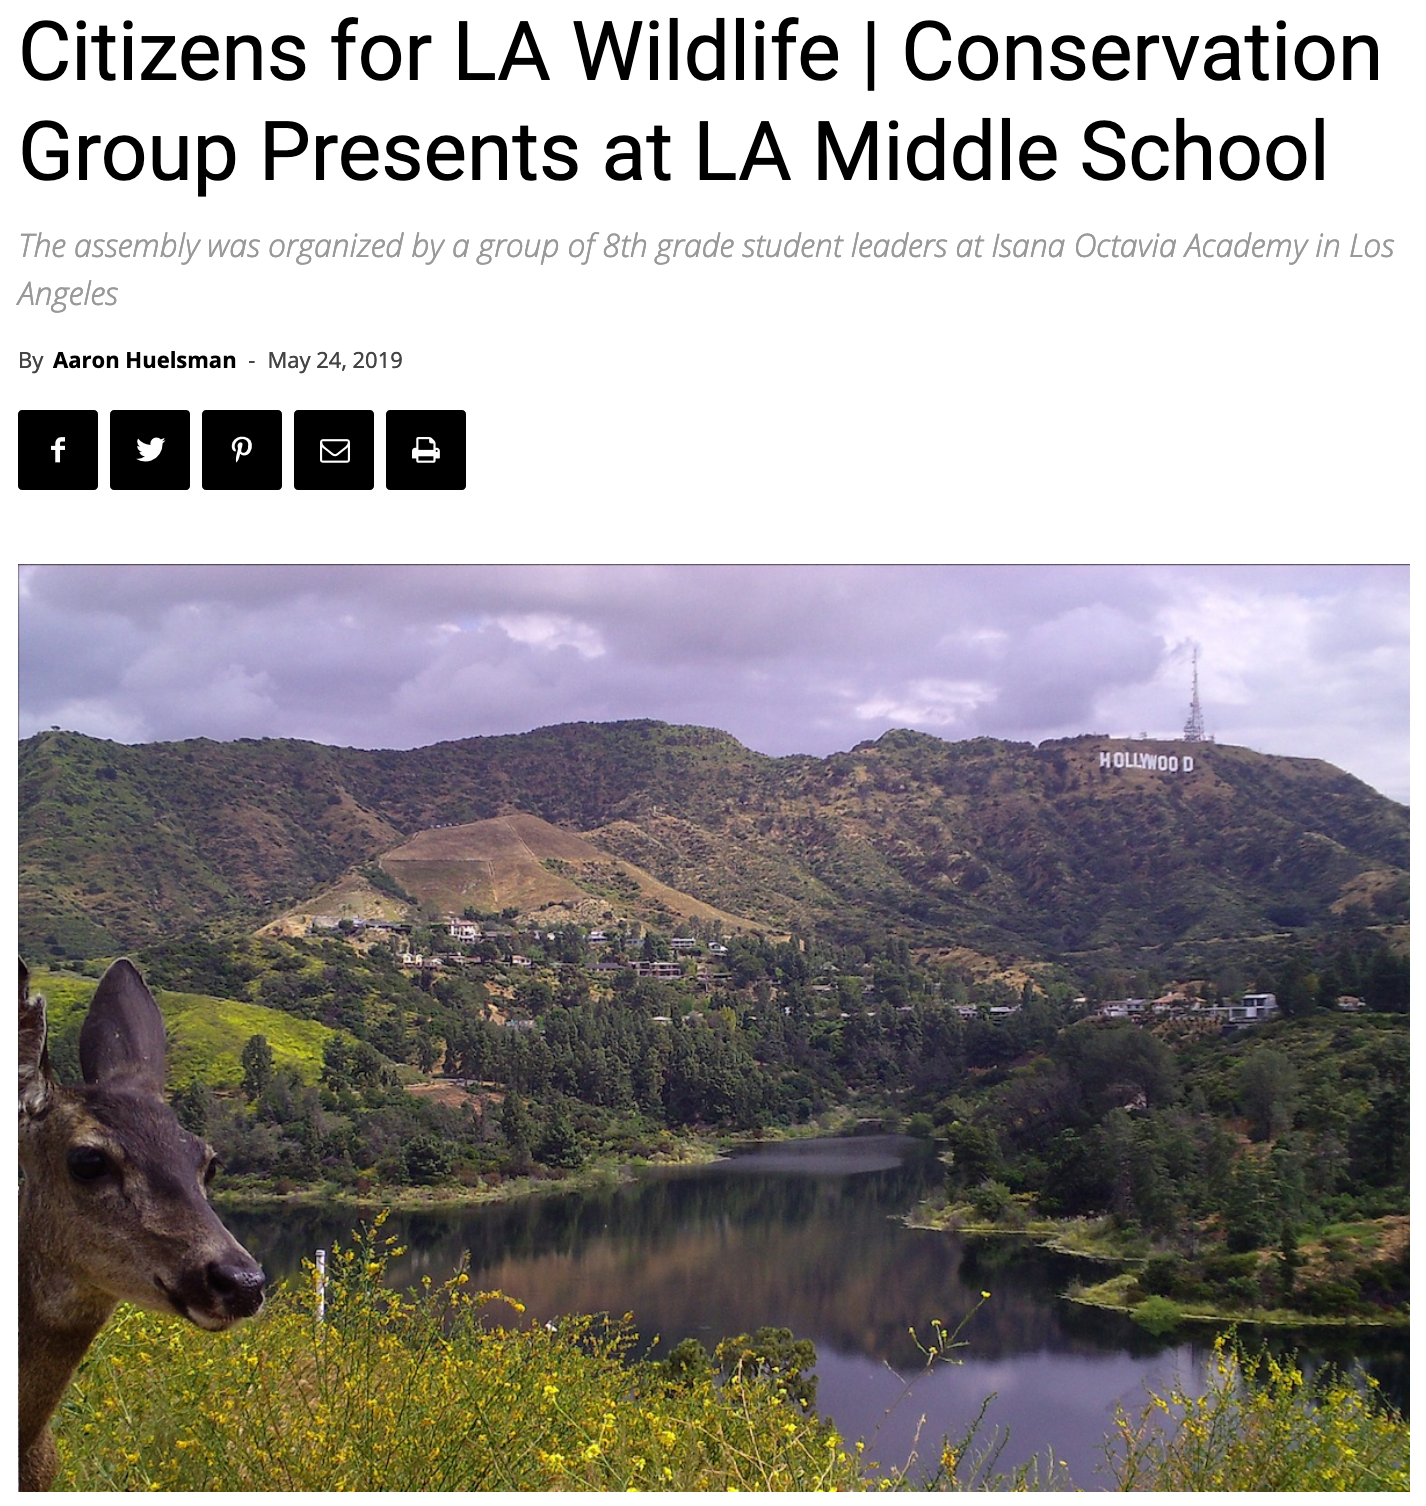 The South Pasadenan profiles CLAW's educational program.